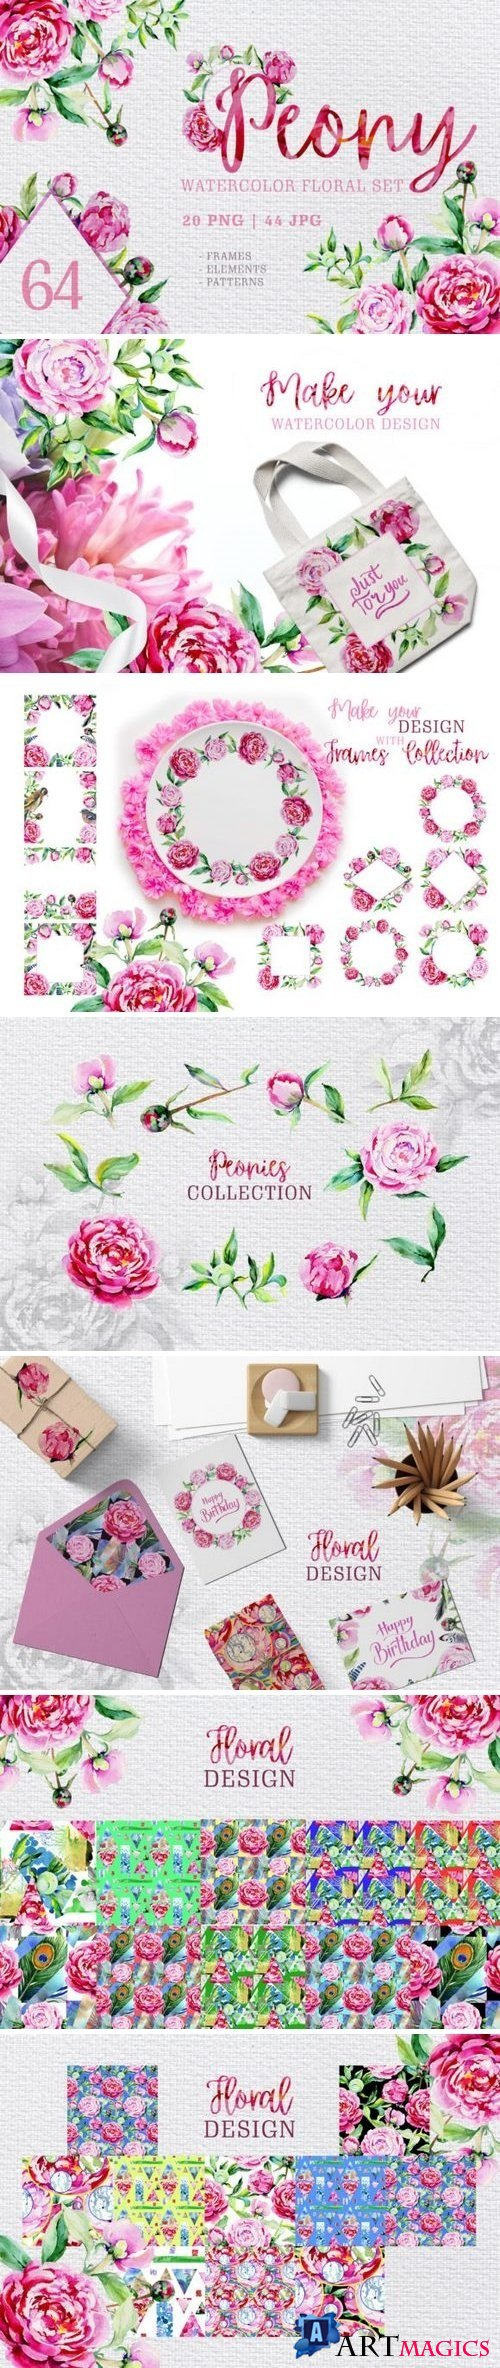 Peony pink watercolor png 3315744